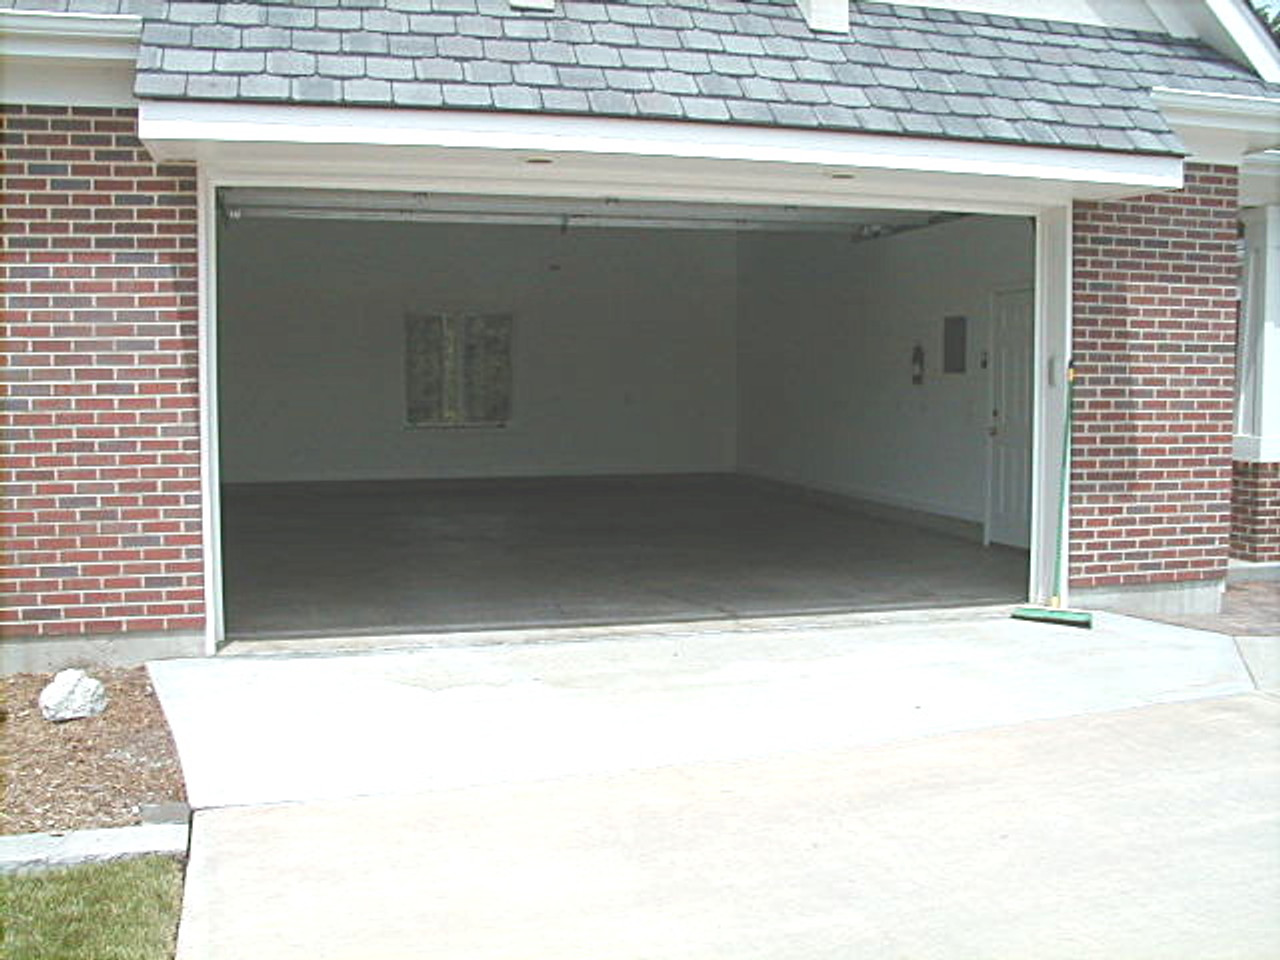 SealGreen Driveway and Garage Cleaner Concentrate is design to clean garage floors